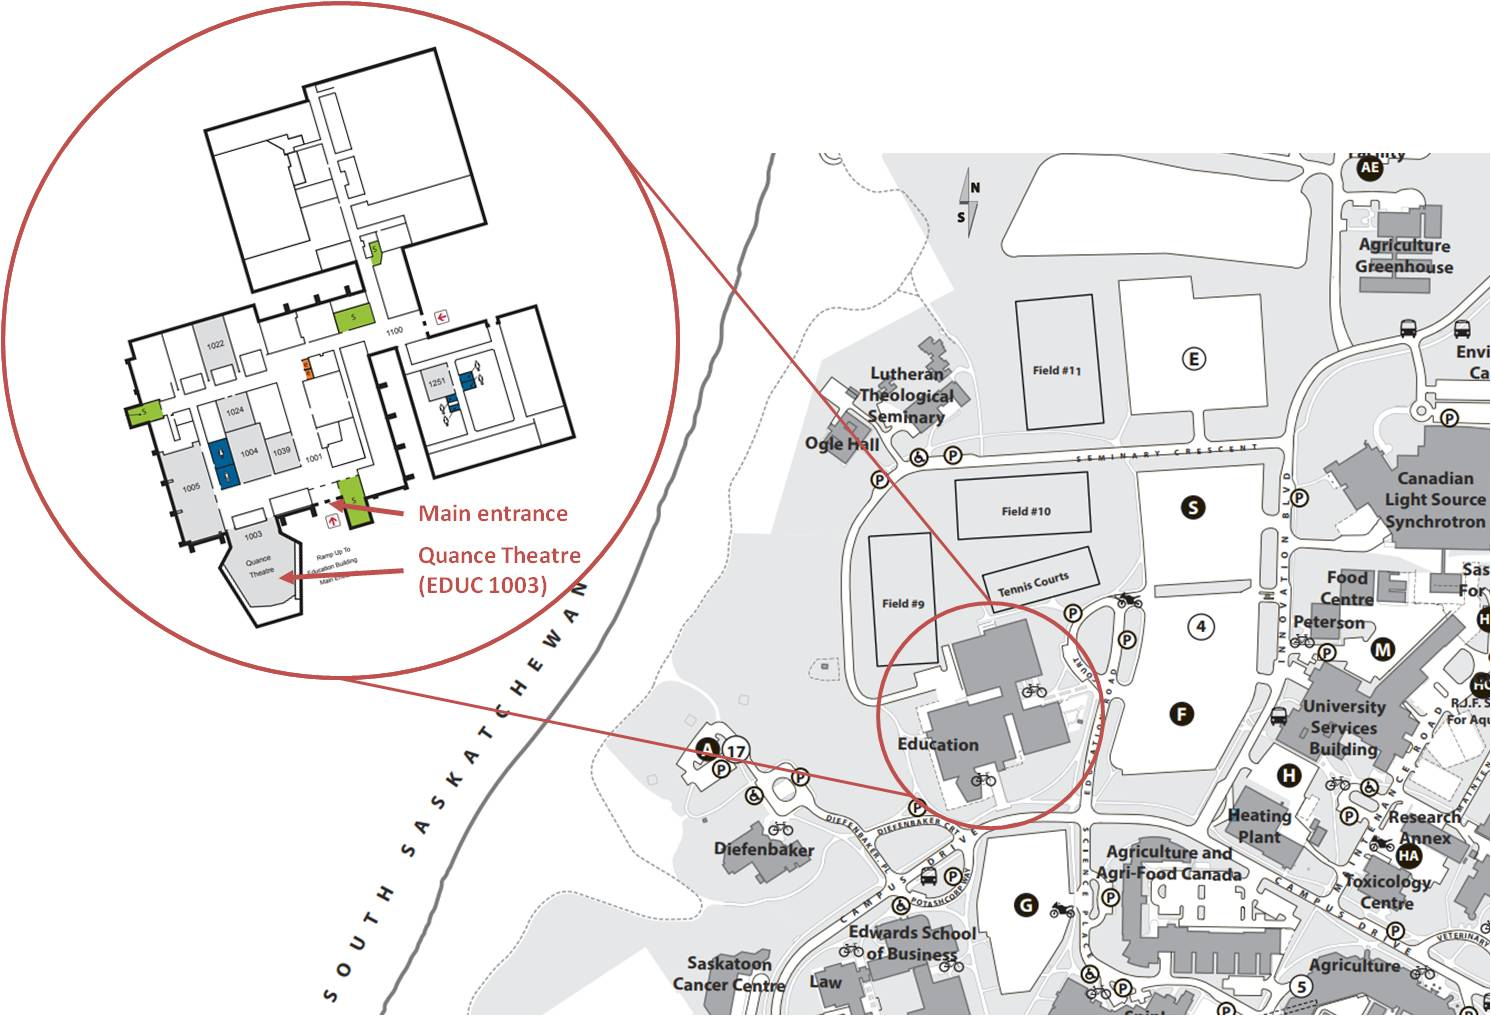 Map of Education Building at the U of S